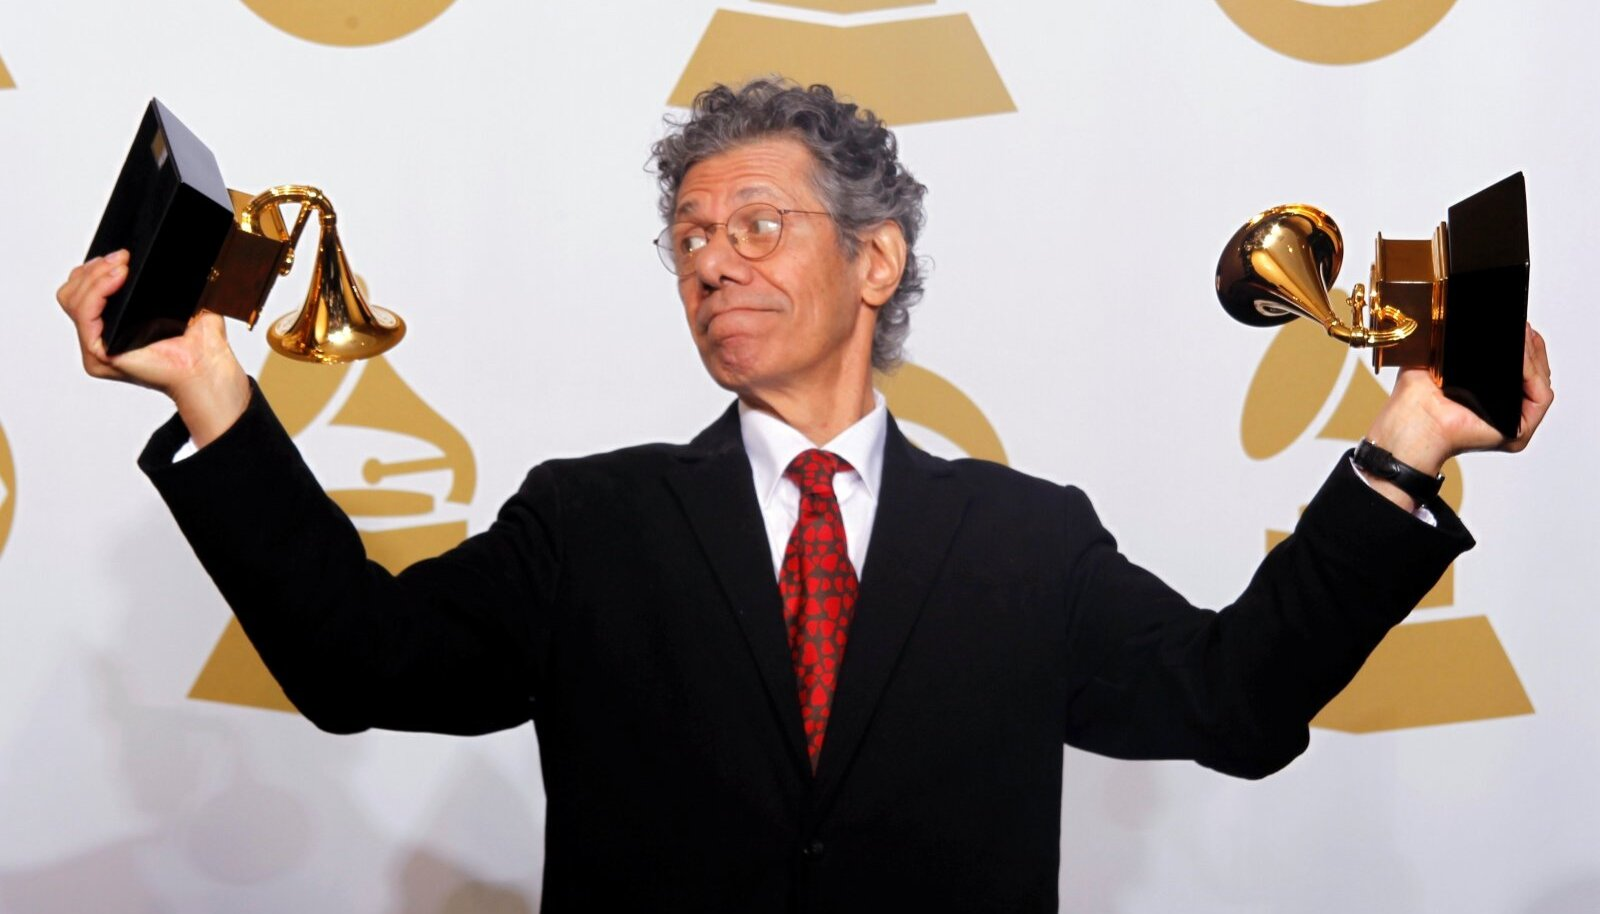 FILE PHOTO: Musician Chick Corea holds his awards for Best Improvised Jazz Solo and Best Jazz Instrumental Album in Los Angeles